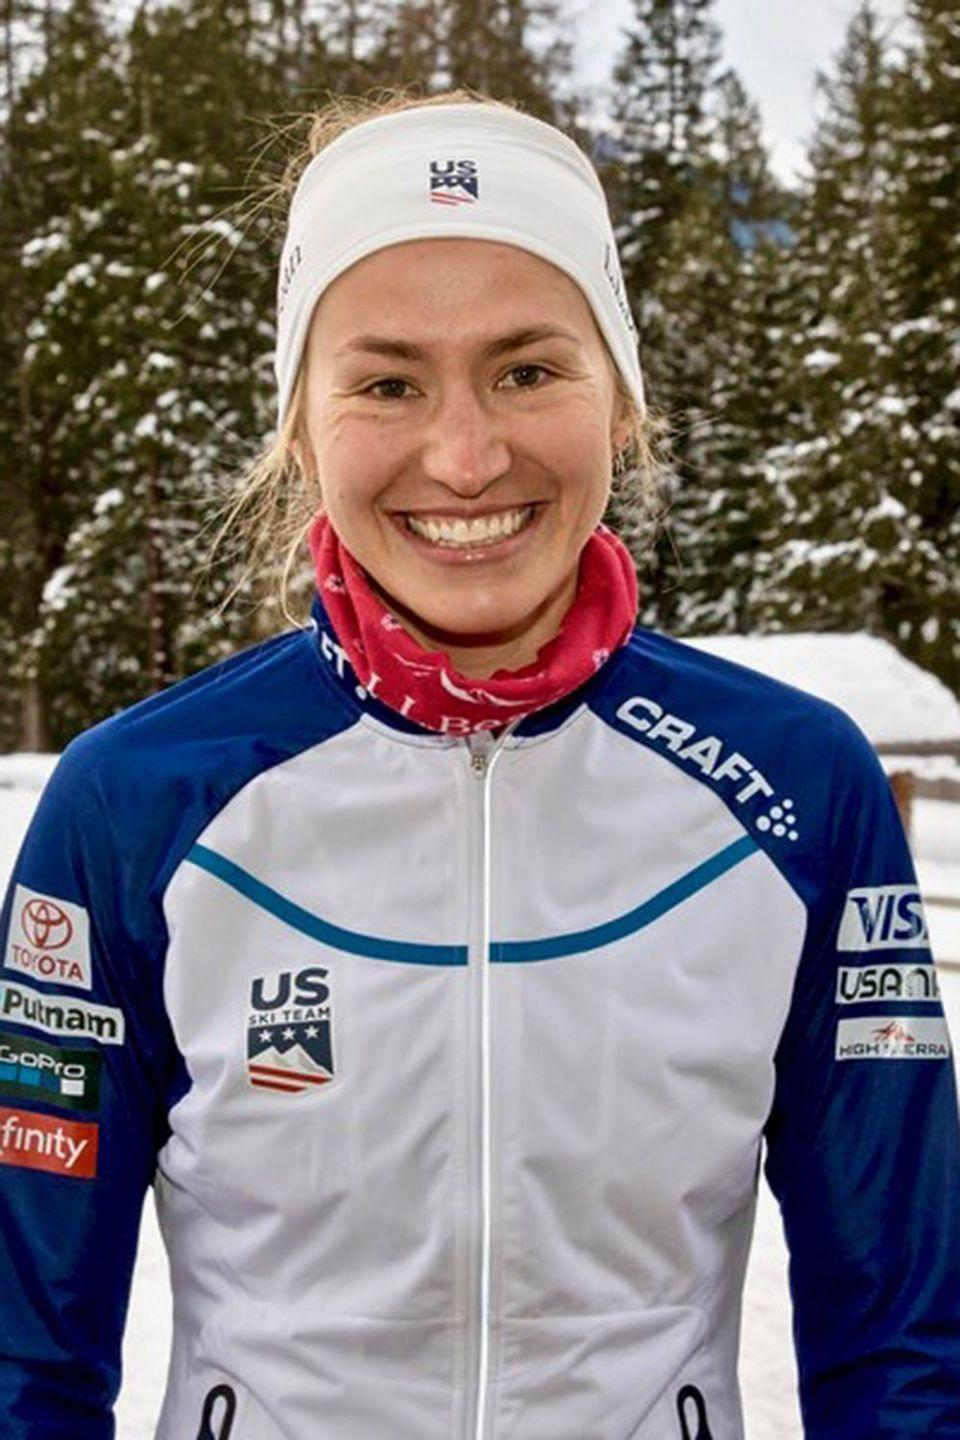 <p>While on the World Cup circuit throughout Europe, Caldwell makes a point of trying interesting foods in all the different countries. She never passes up an opportunity to dig into brunost (brown cheese) from Norway, pasta, gnocchi or spaetzle, and she has a special affinity for European gummies and jelly beans.</p>